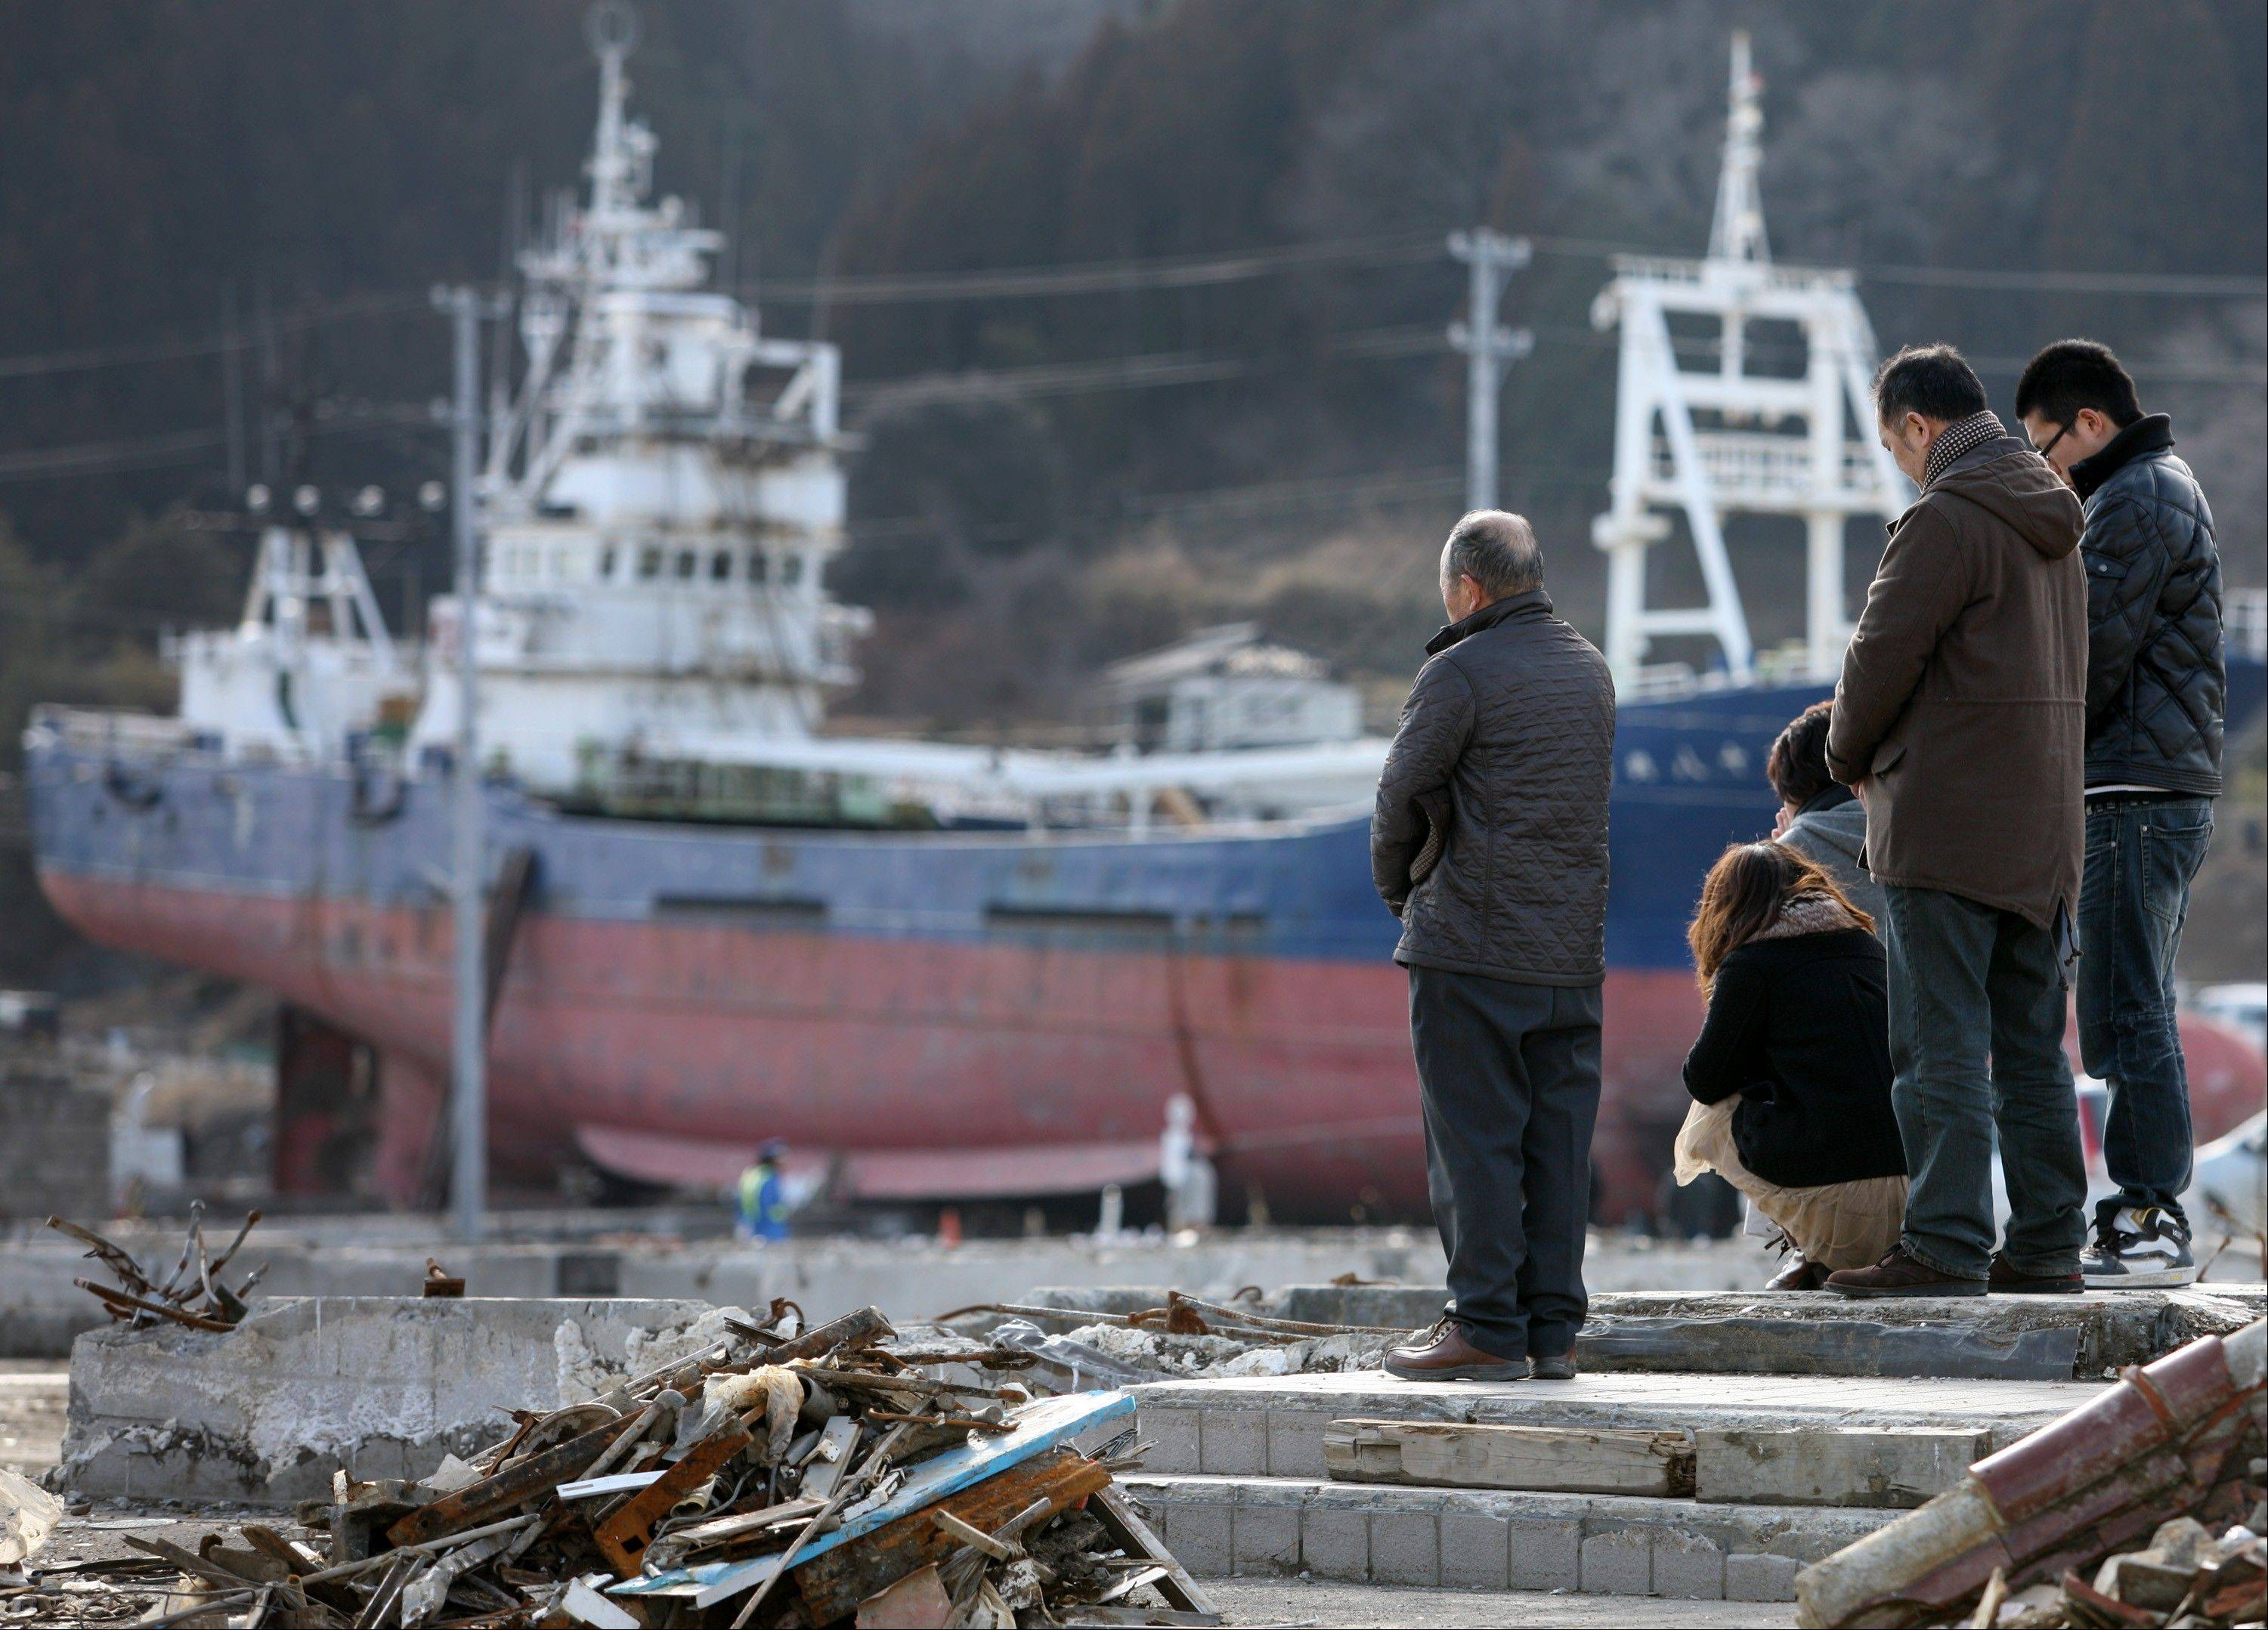 People observe a moment of silence in front of a vessel swept inland by the tsunami which followed the Great East Japan Earthquake to commemorate the one-year anniversary of the disaster at 2:46 p.m. in Kesennuma City, Miyagi Prefecture, Japan, on Sunday, March 11, 2012. The magnitude-9 earthquake last year triggered a tsunami that in just 60 minutes laid waste to entire towns, engulfed four-story hospitals, left hundreds of thousands of homeless and crippled a nuclear plant.